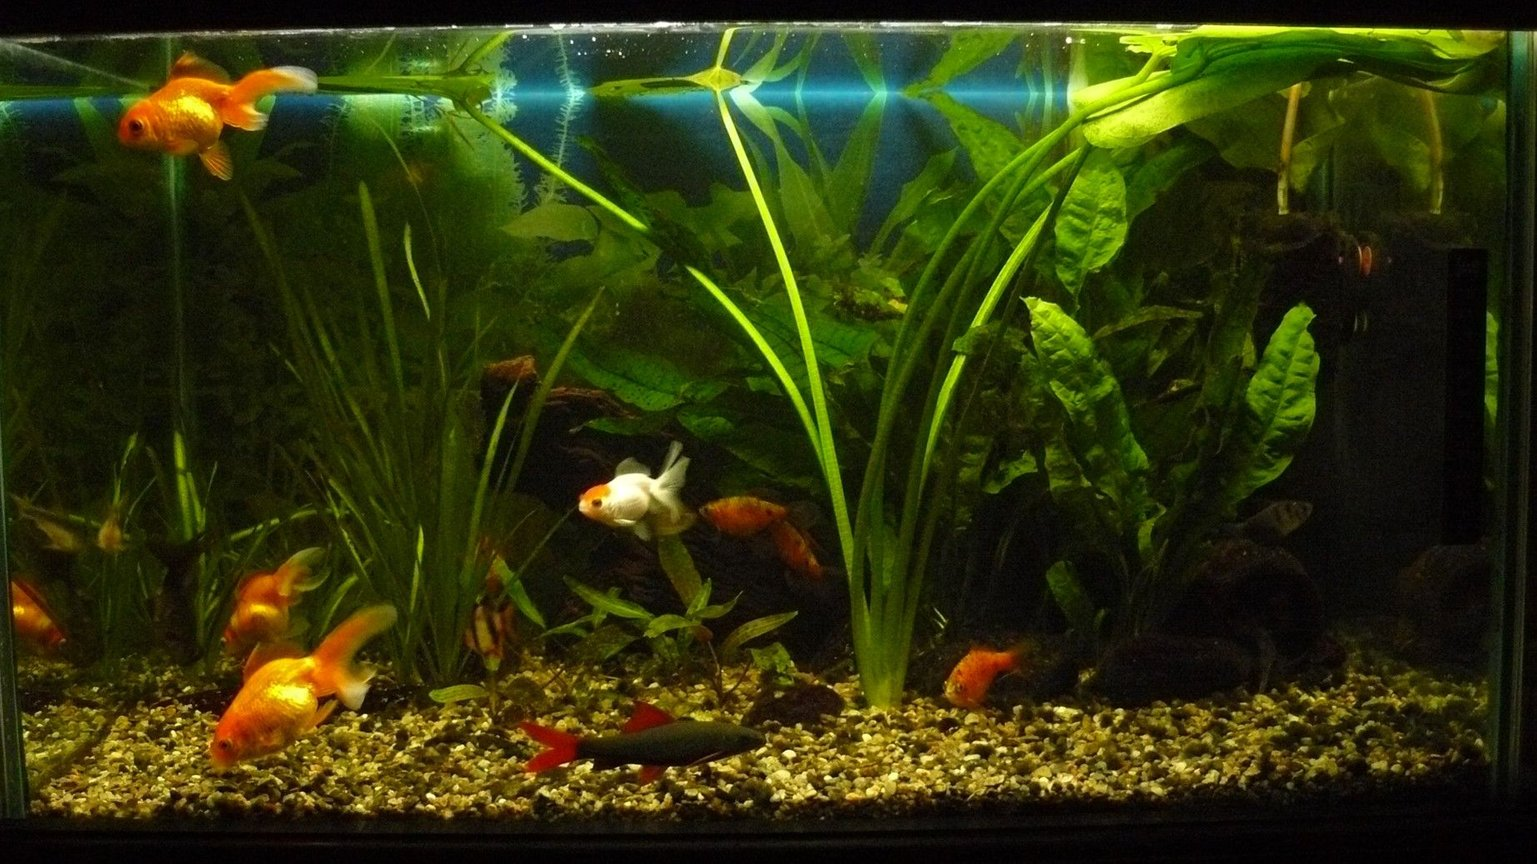 25 gallons freshwater fish tank (mostly fish and non-living decorations) - 100 L tank, 5 goldfish, 1 labeo, 2 corry, 2 tetra, 4 conconius, 1 kuli, 1 tiger barb.